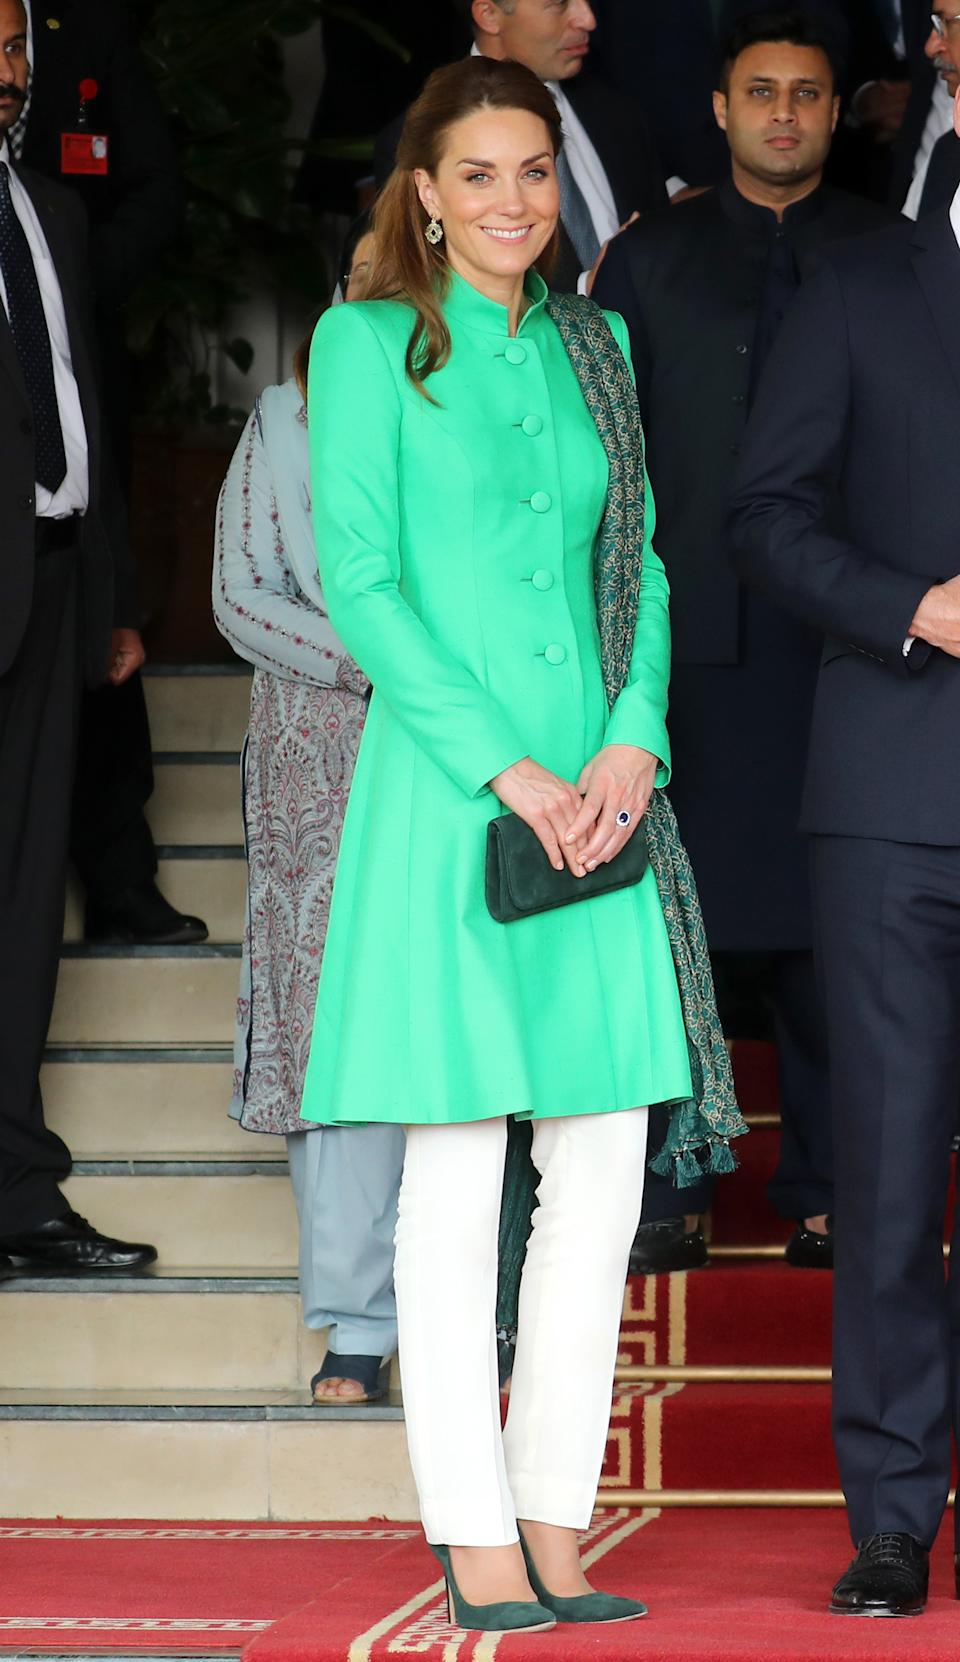 For her second engagement, the Duchess wore a new green Catherine Walker coat with white trousers by Maheen Khan. A suede green clutch bag and matching heels completed the look, along with a scarf by Satragni and earrings by Zeen. <em>[Photo: Chris Jackson/Getty Images]</em>